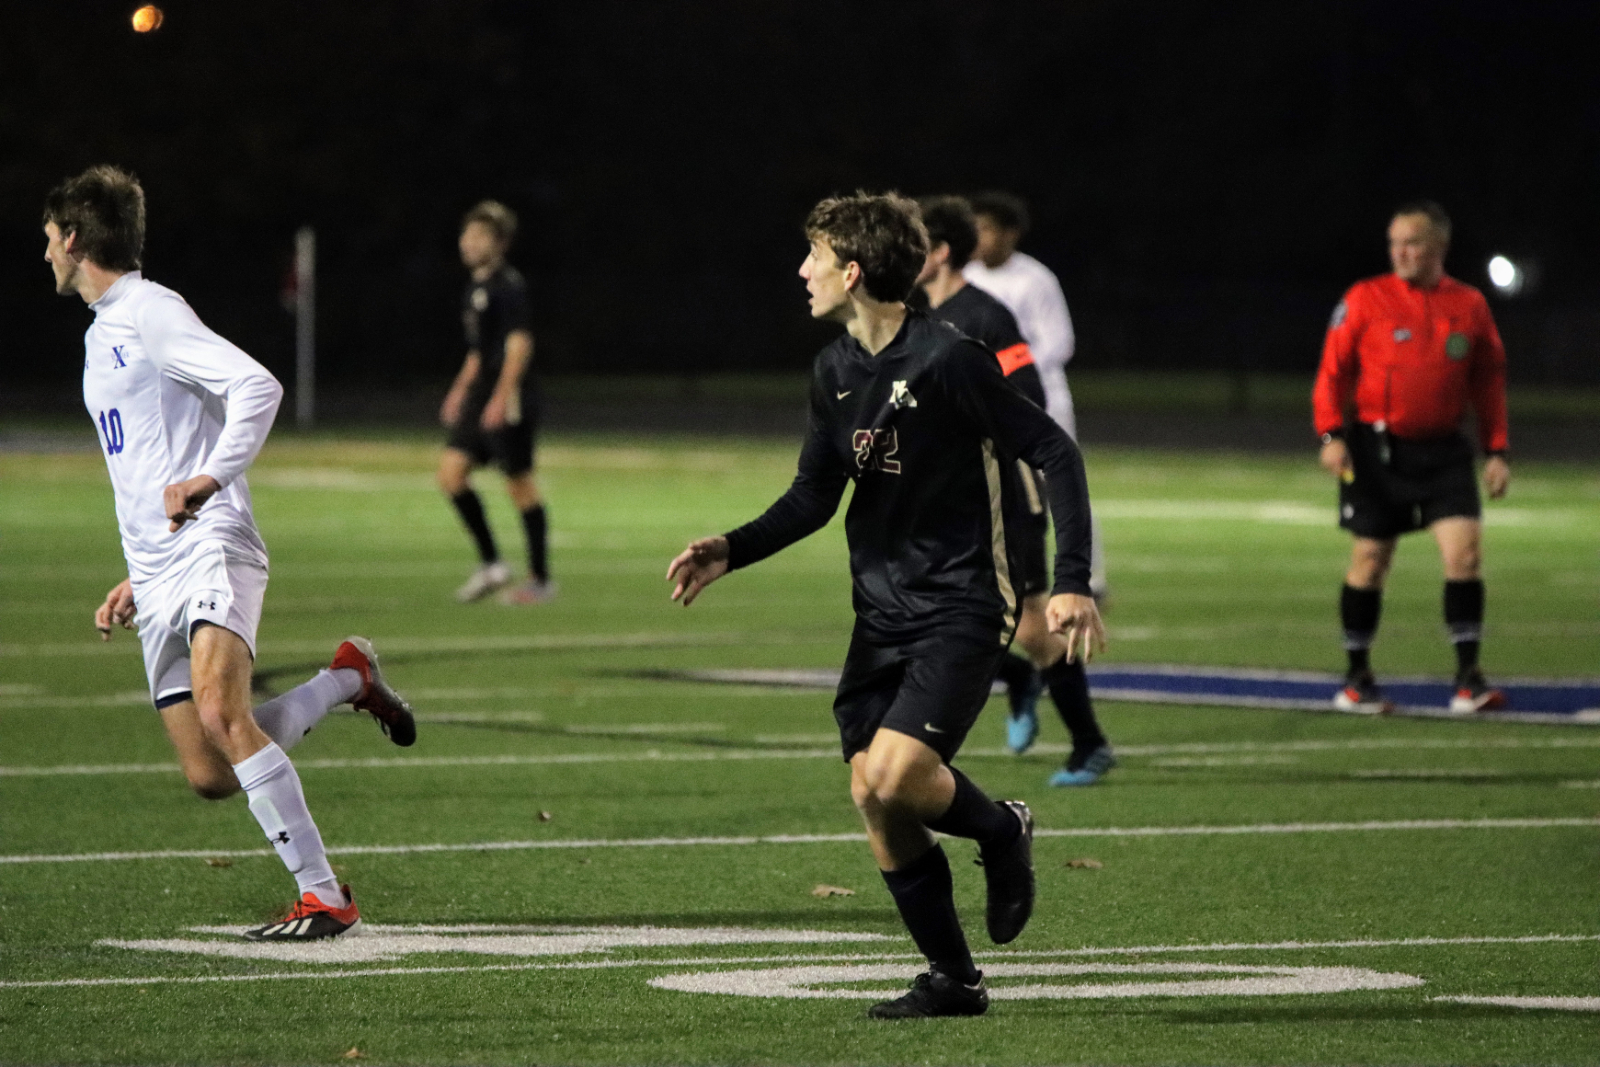 Photos: Boys Soccer vs St Xavier (State Semifinals) 11/11/2020